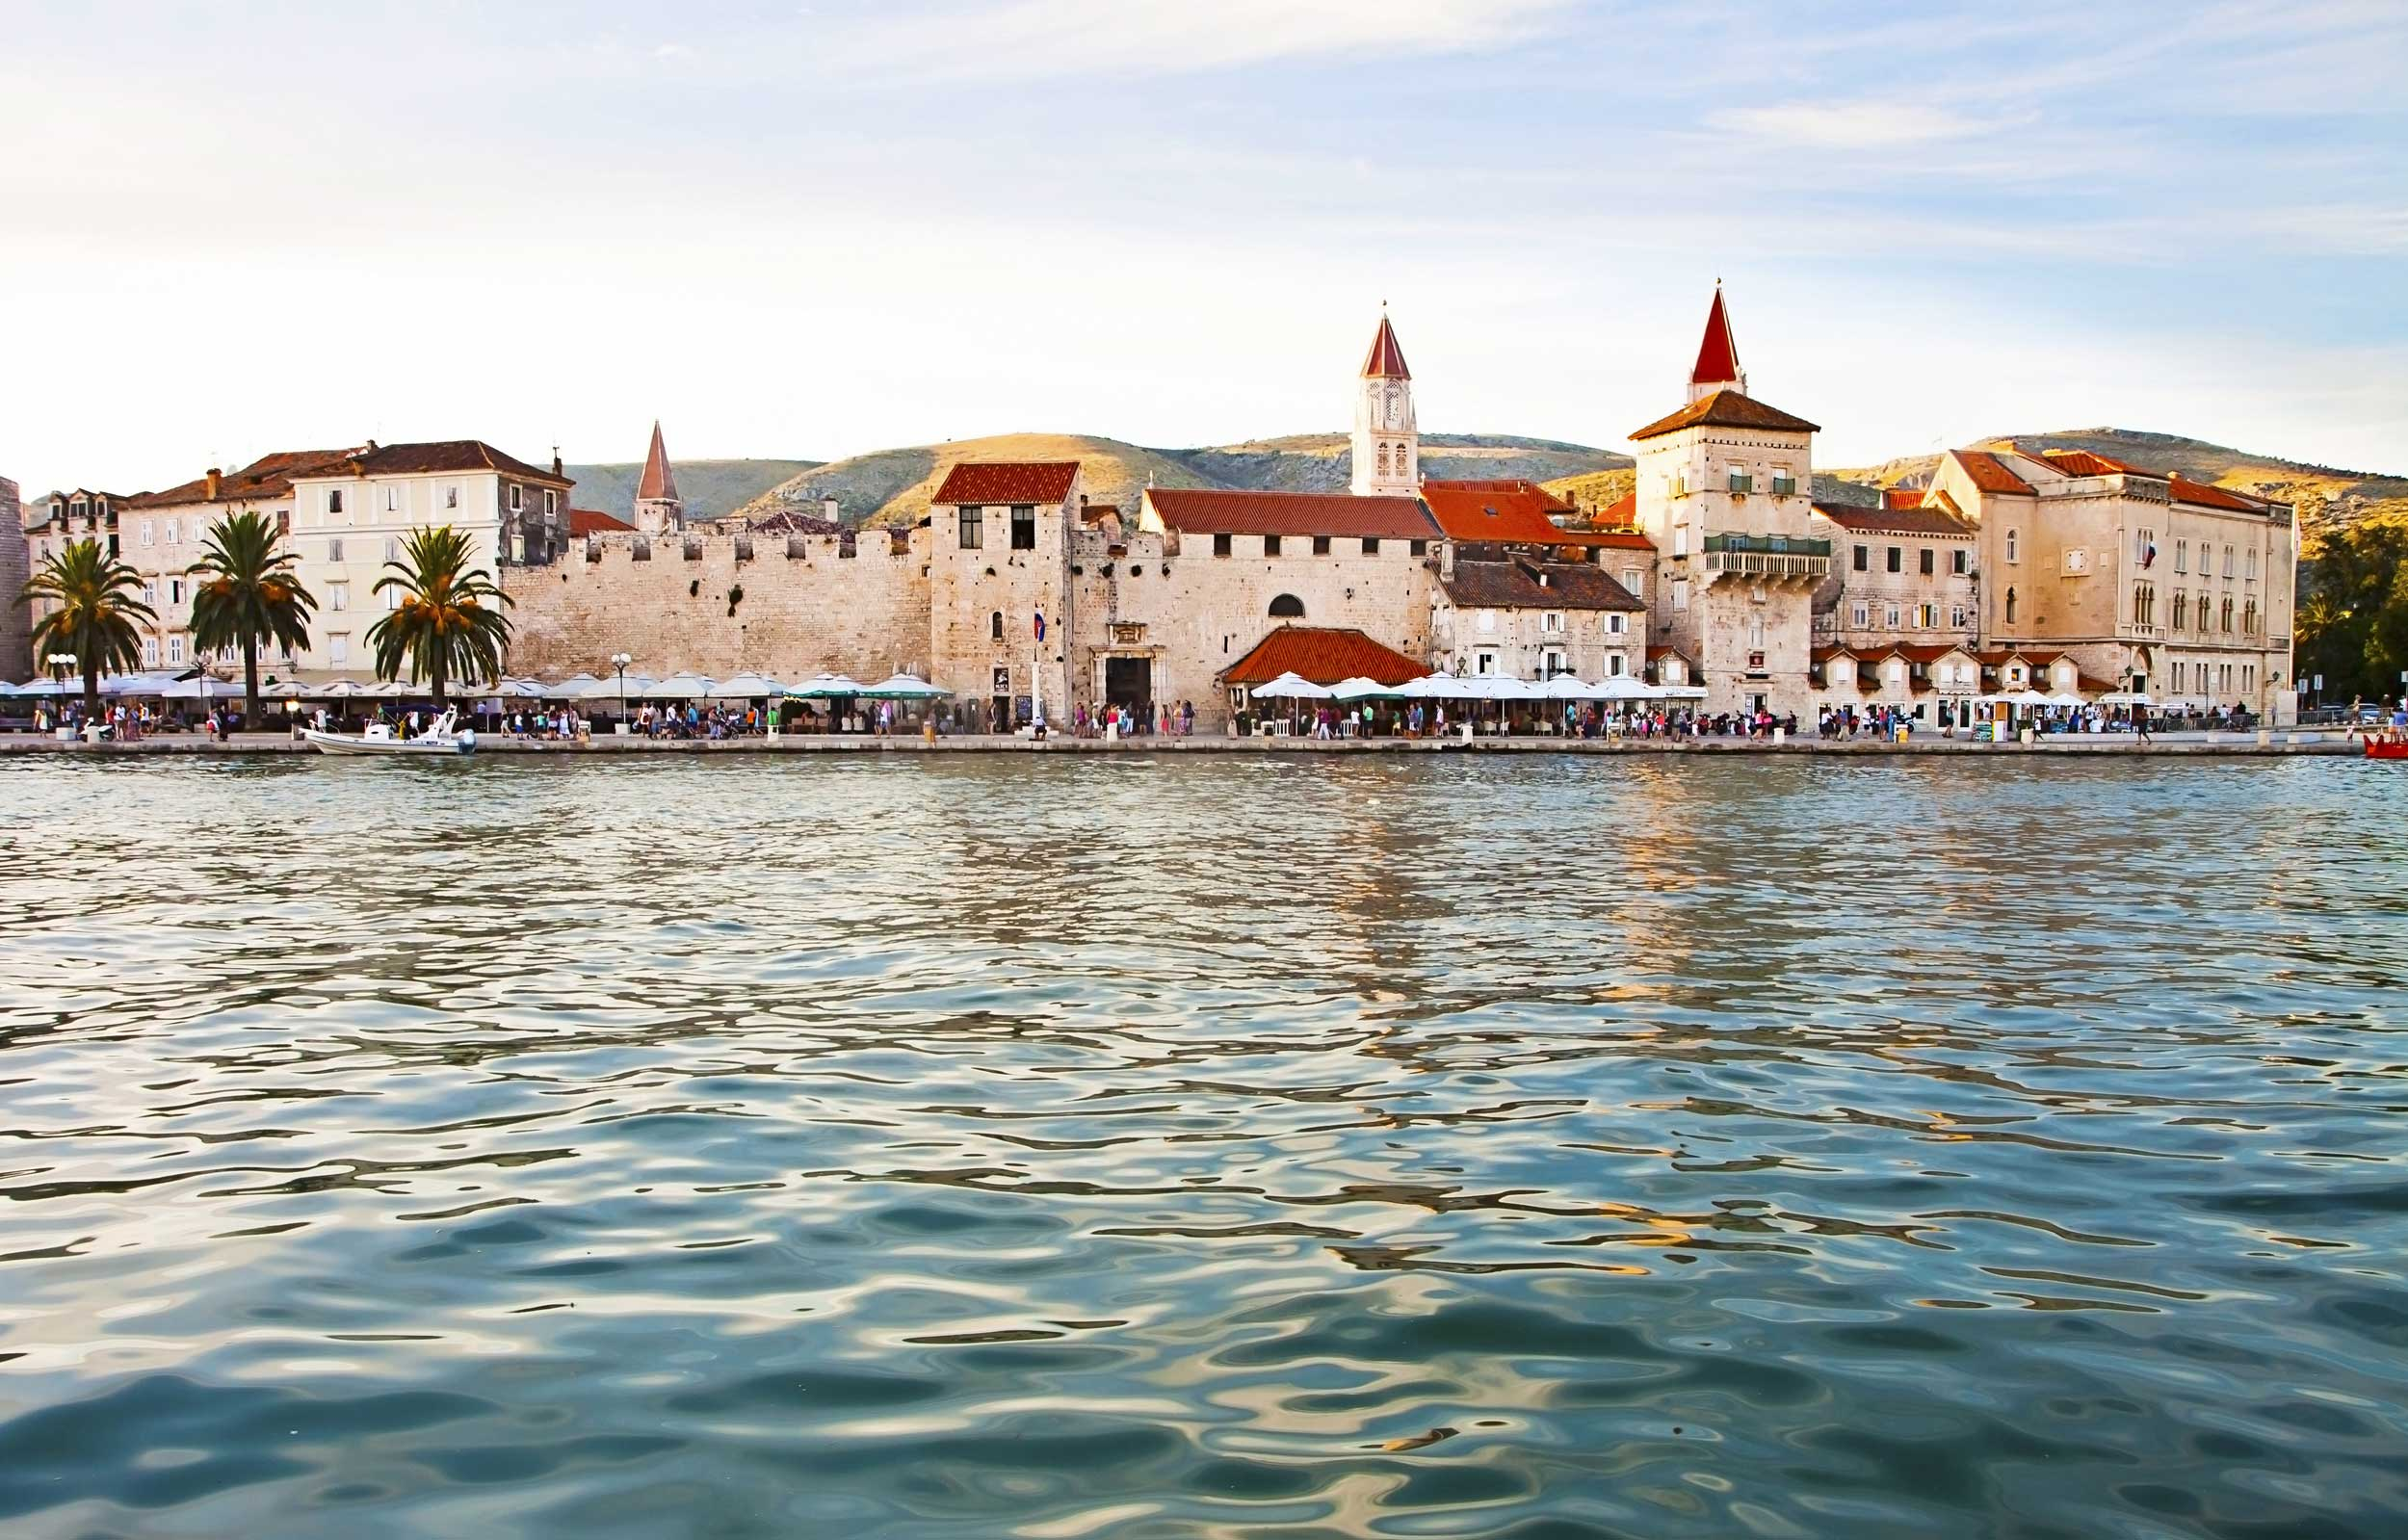 View across water to a white-walled red-roofed medieval structures by a promenade, Croatia